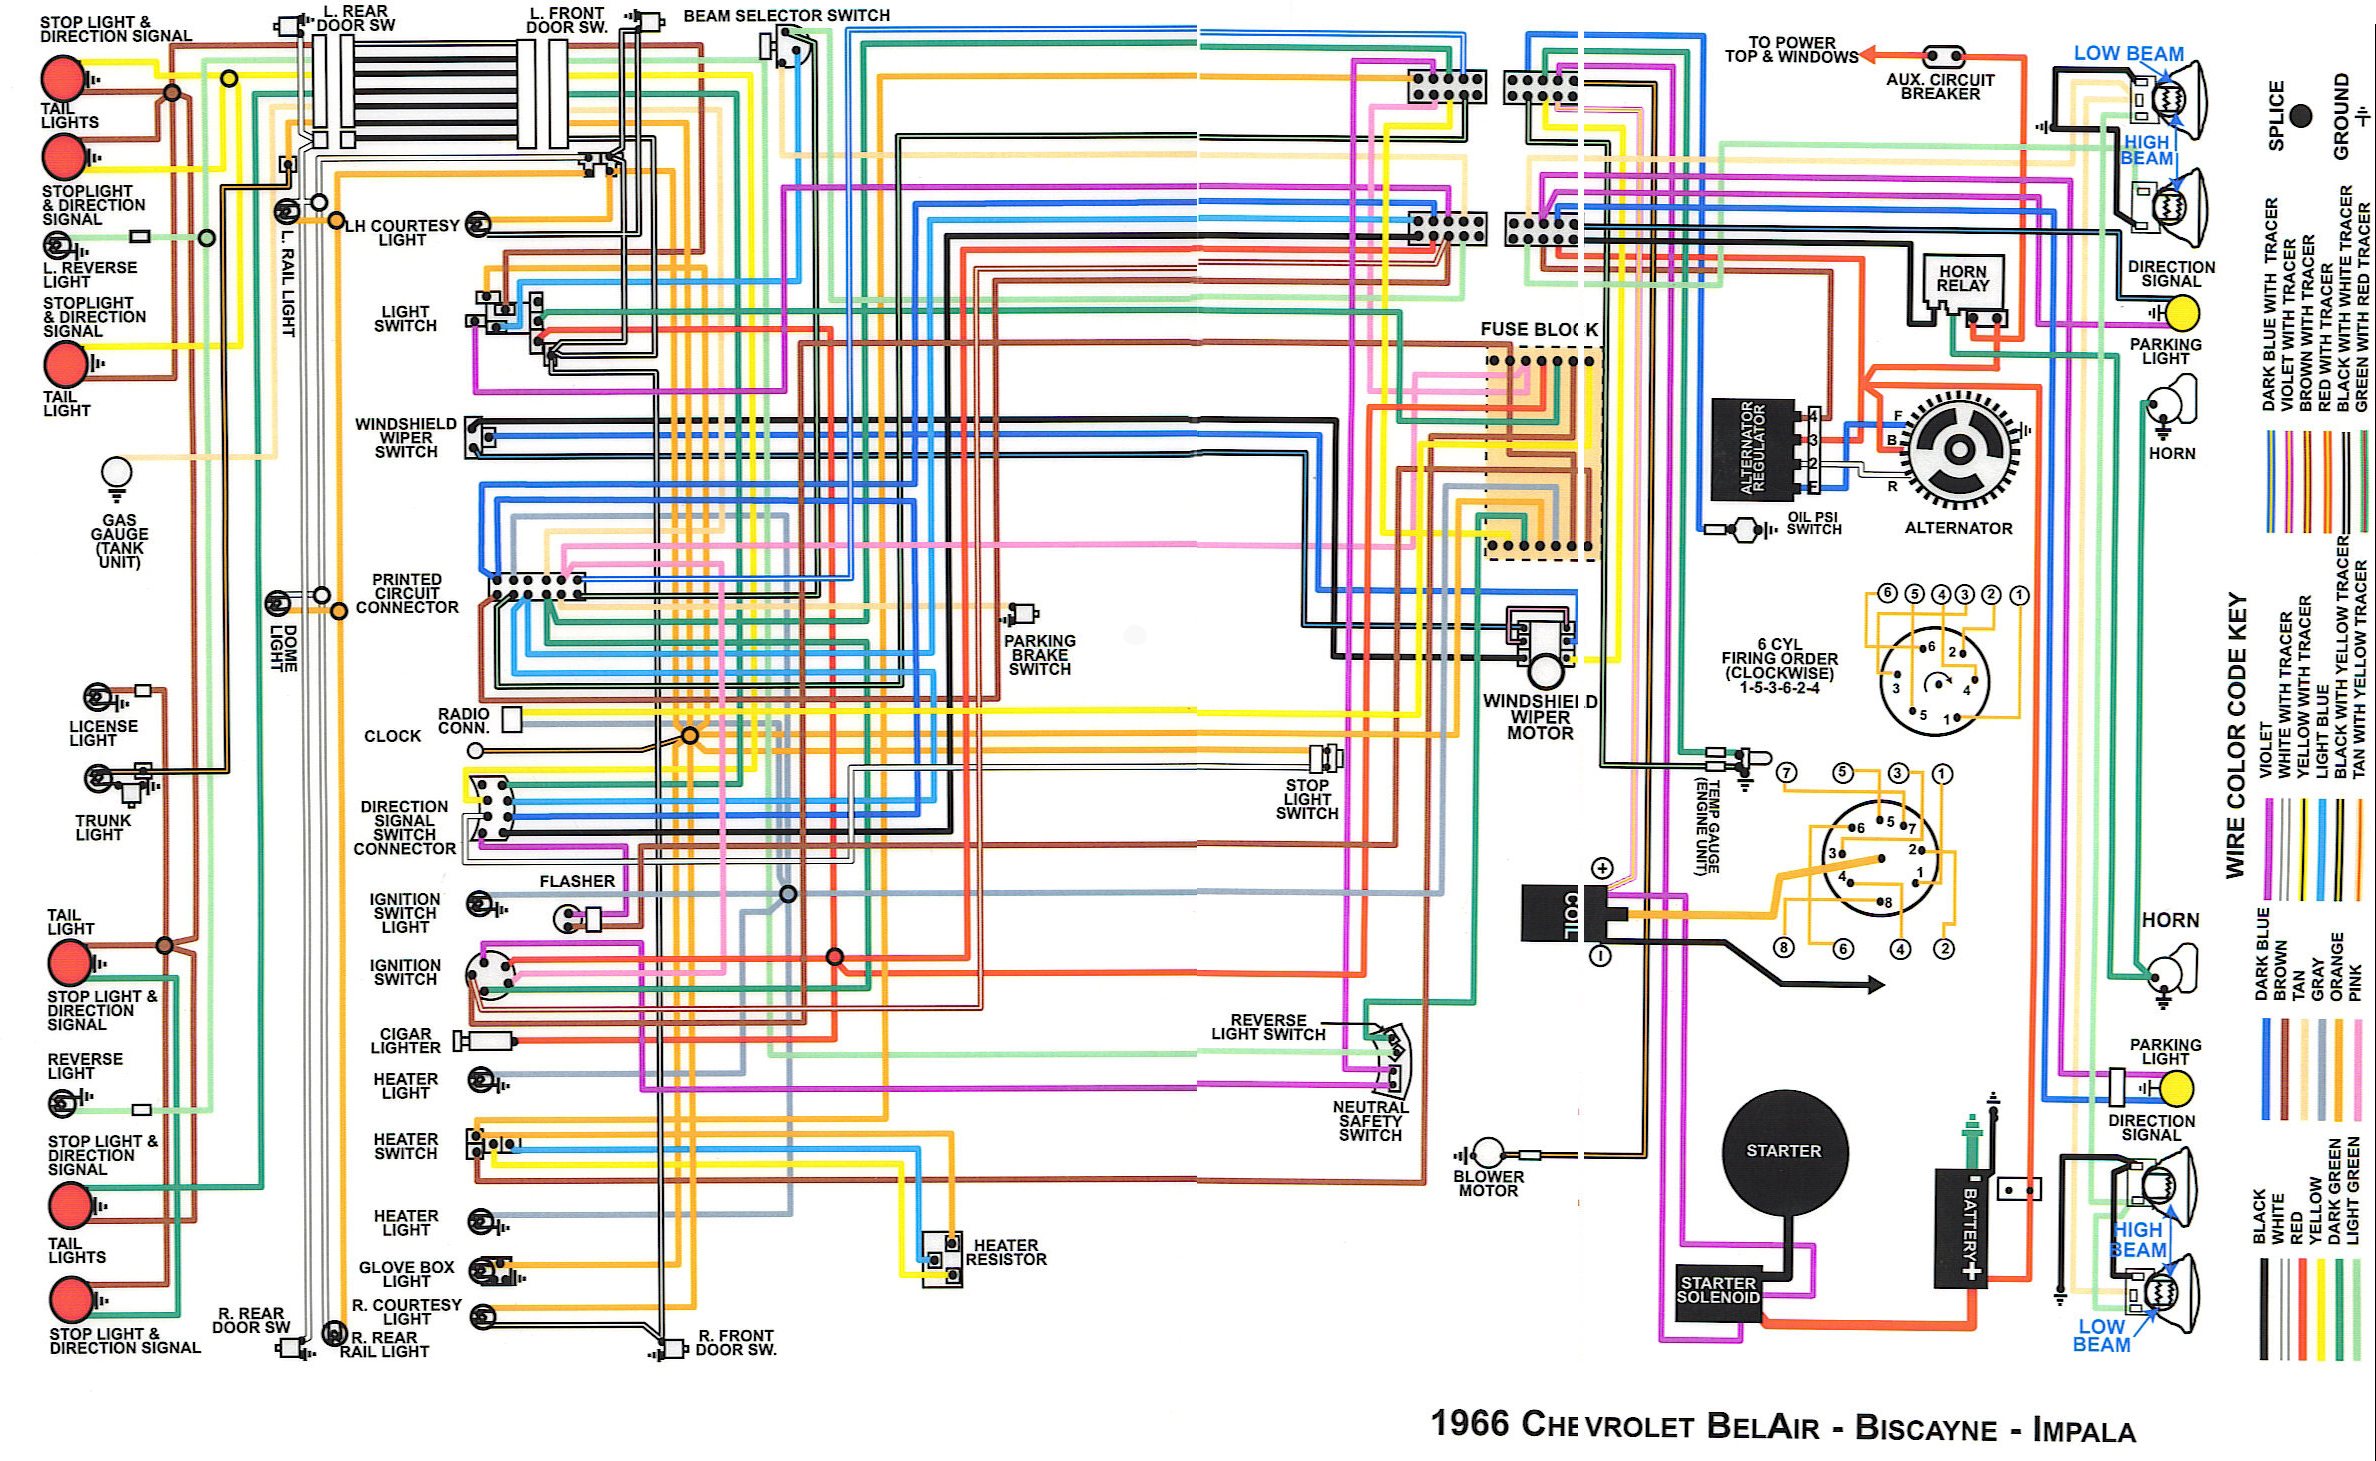 1980 Chevy Radio Wiring Color Schematic Diagrams Pickup Diagram Cbr 900rr Besides Mercedes Delco 1999